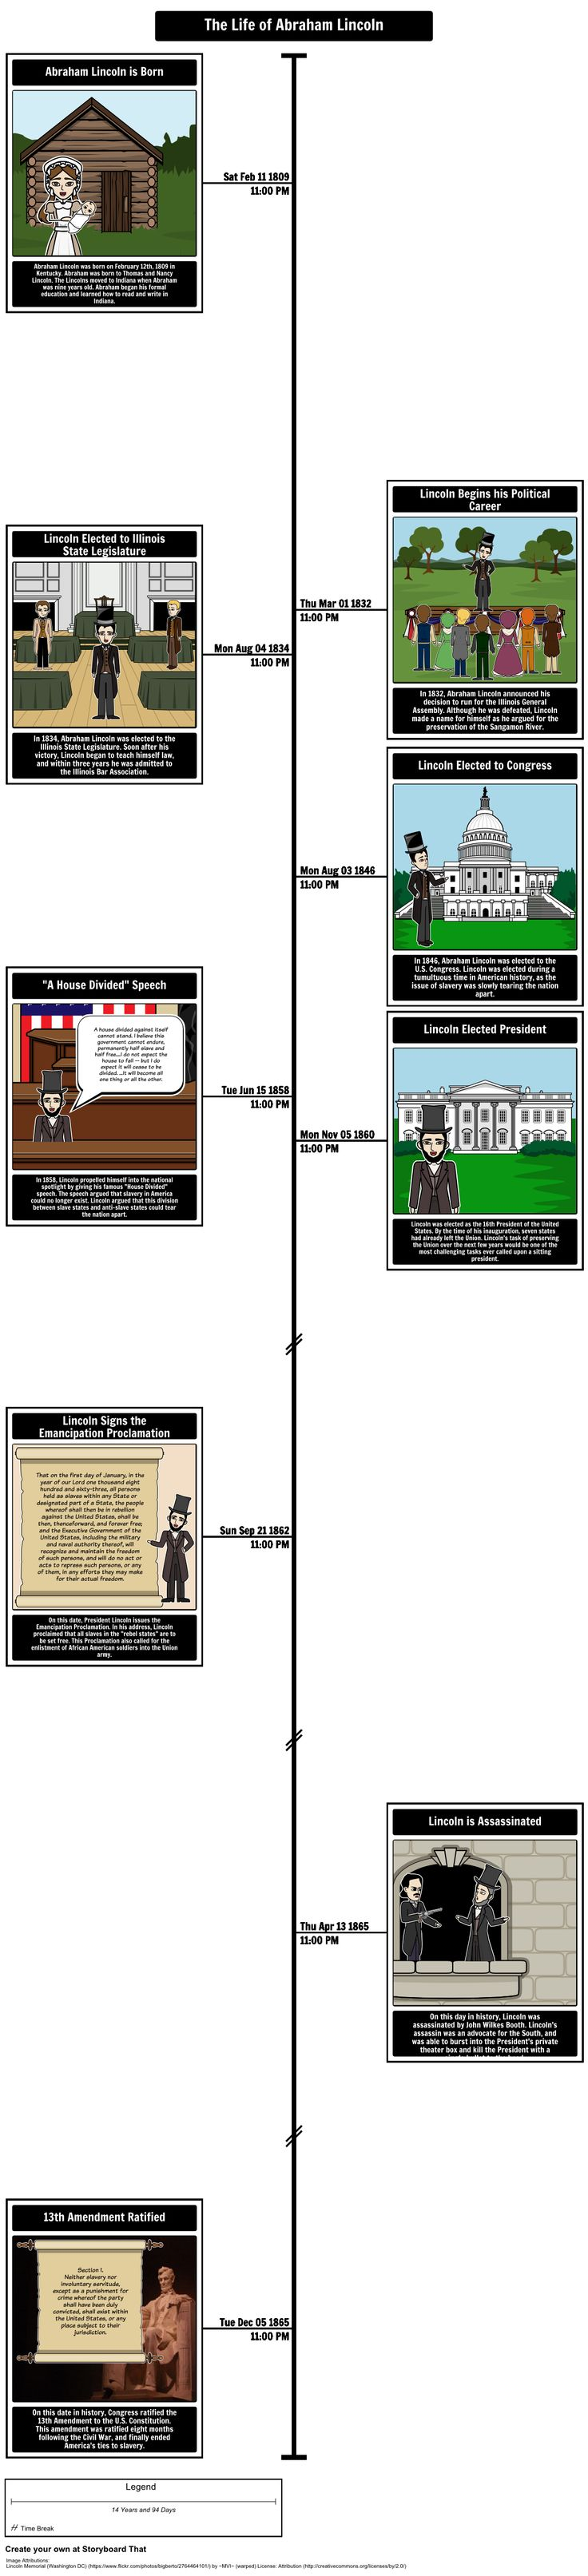 best ideas about abraham lincoln biography the executive branch of the us government biography of a president abraham lincoln is born the life of abraham lincoln abraham lincoln was born on